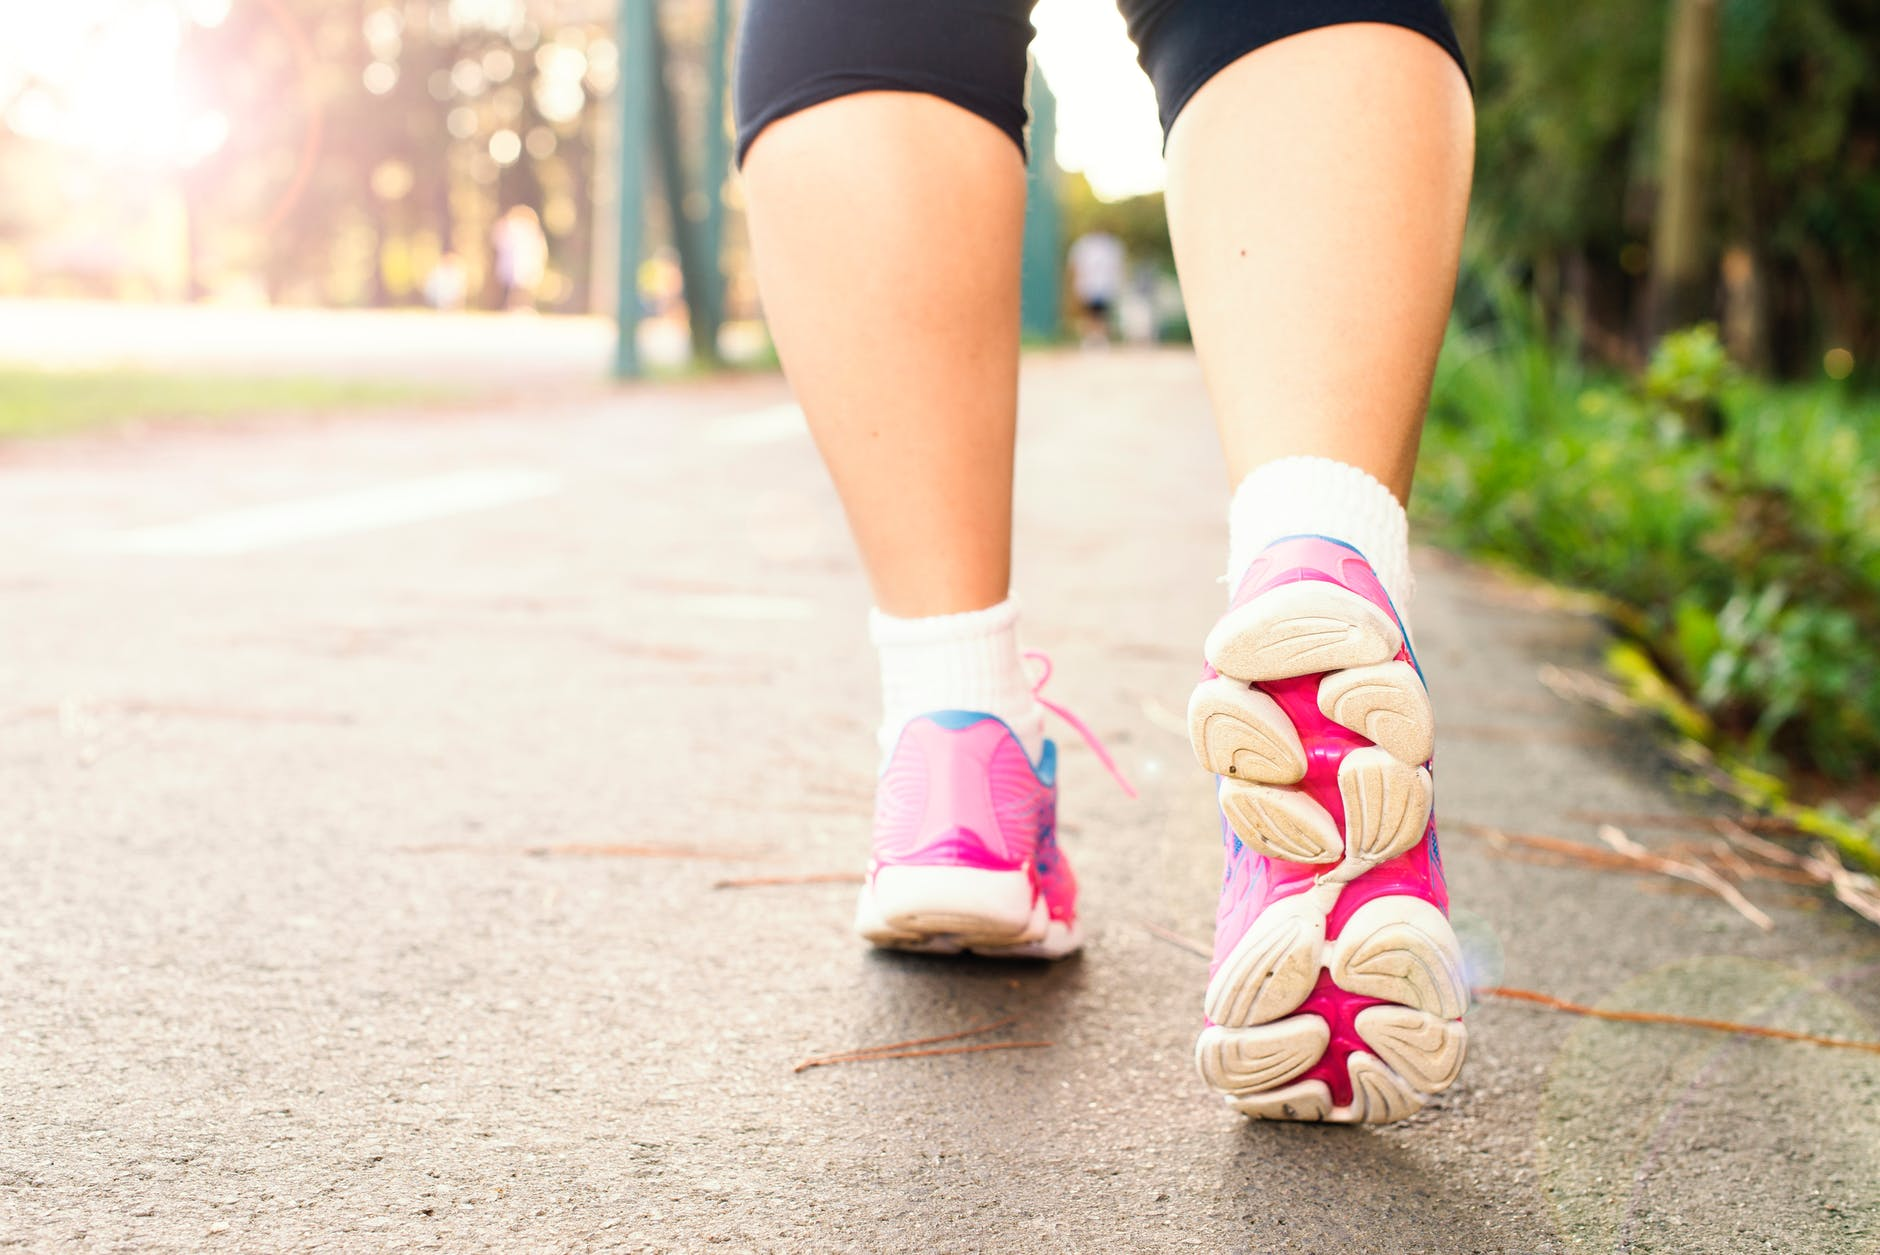 photo of woman wearing pink sports shoes walking